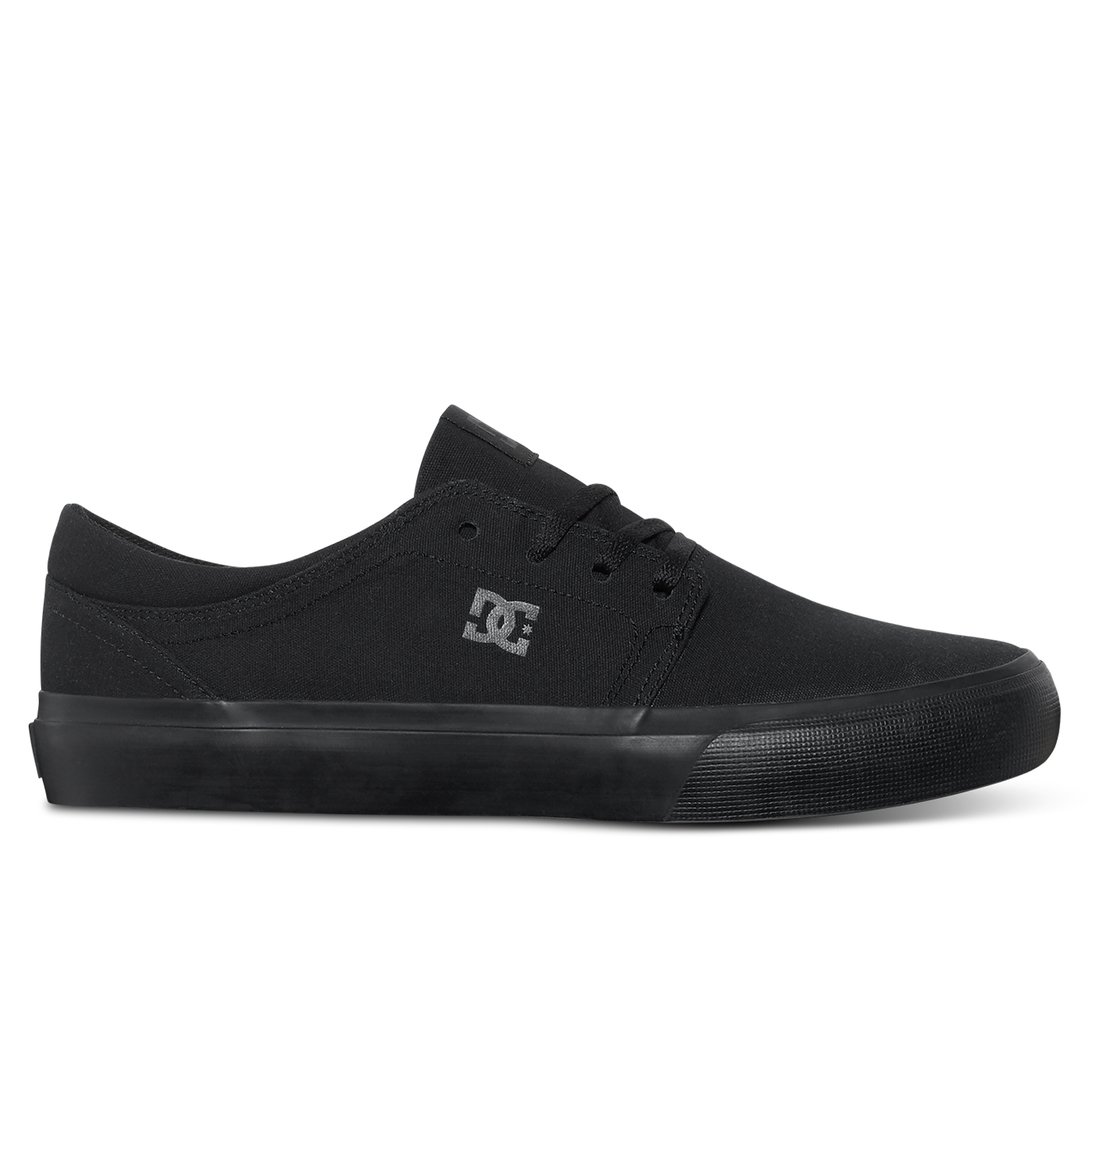 Zapatos azules DC Shoes Trase infantiles e48Wm